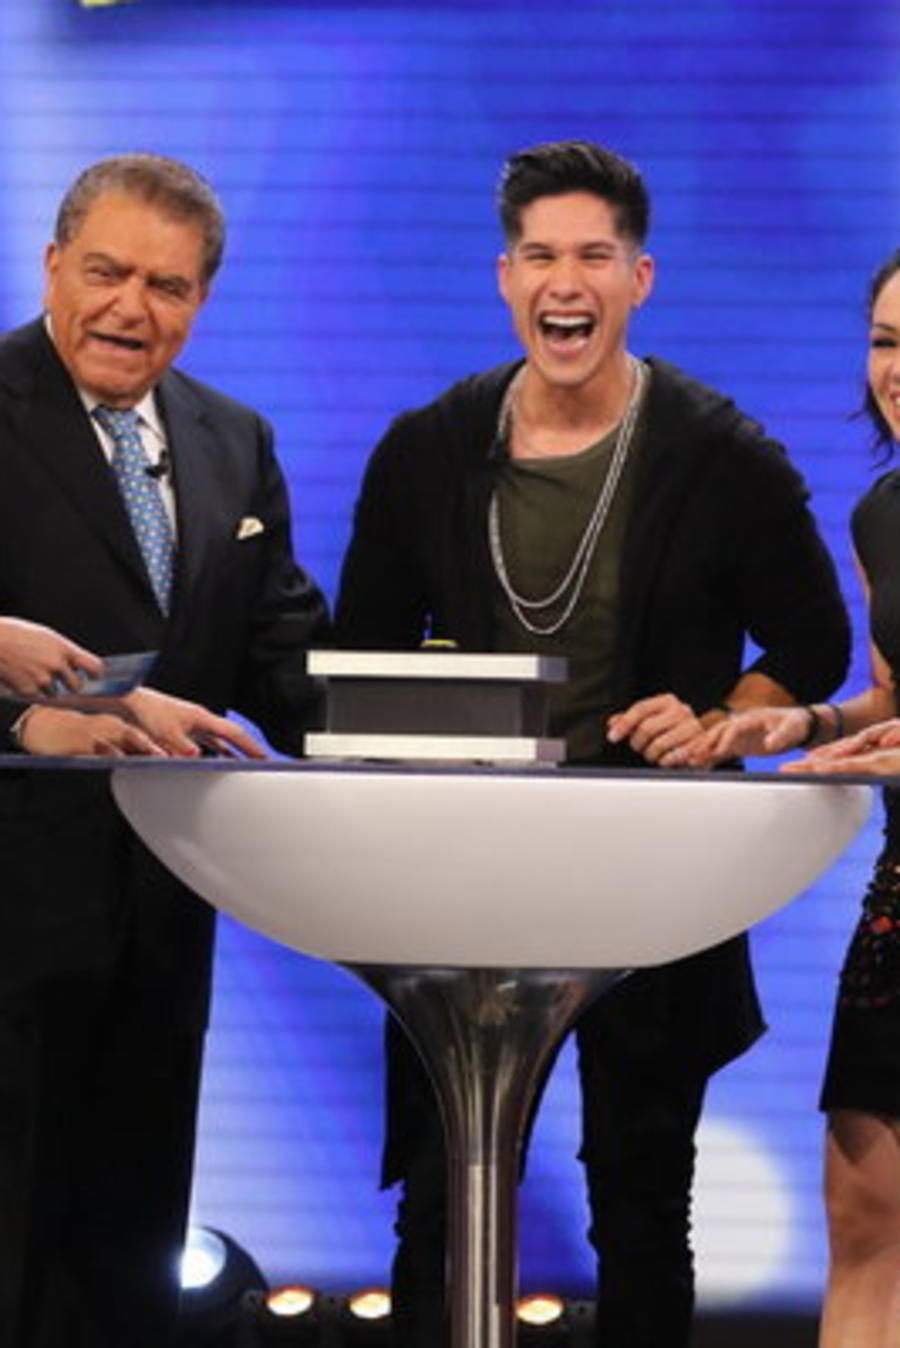 Don Francisco Te Invita - Season 1